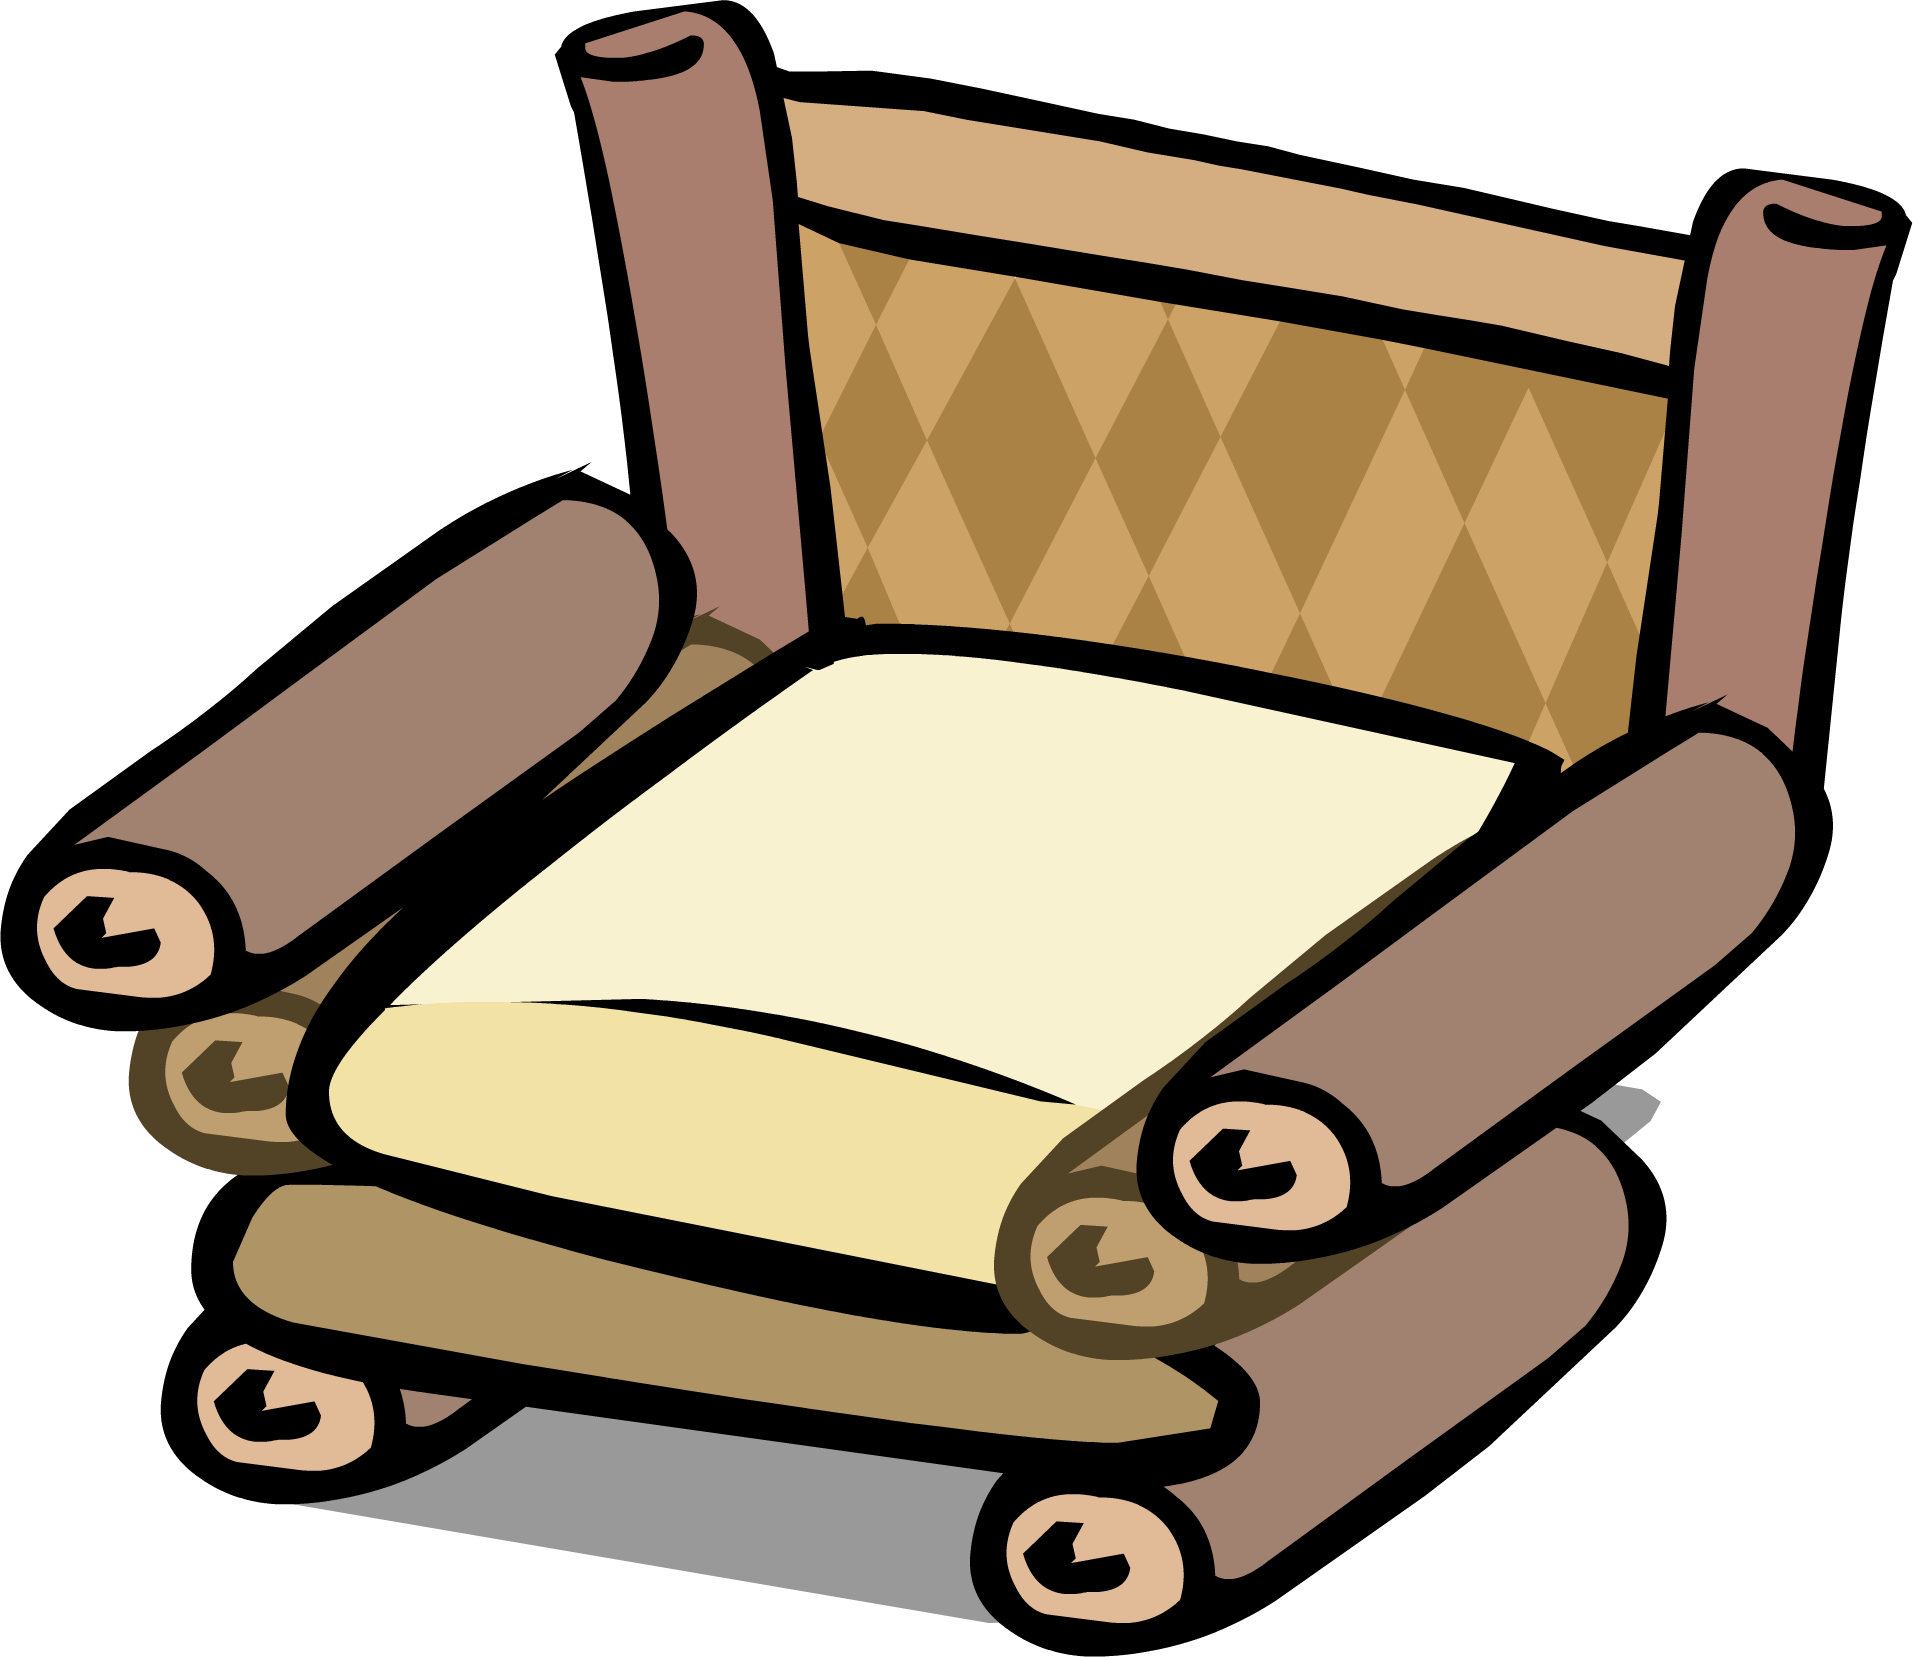 Image sprite png club. Clipart chair bamboo chair